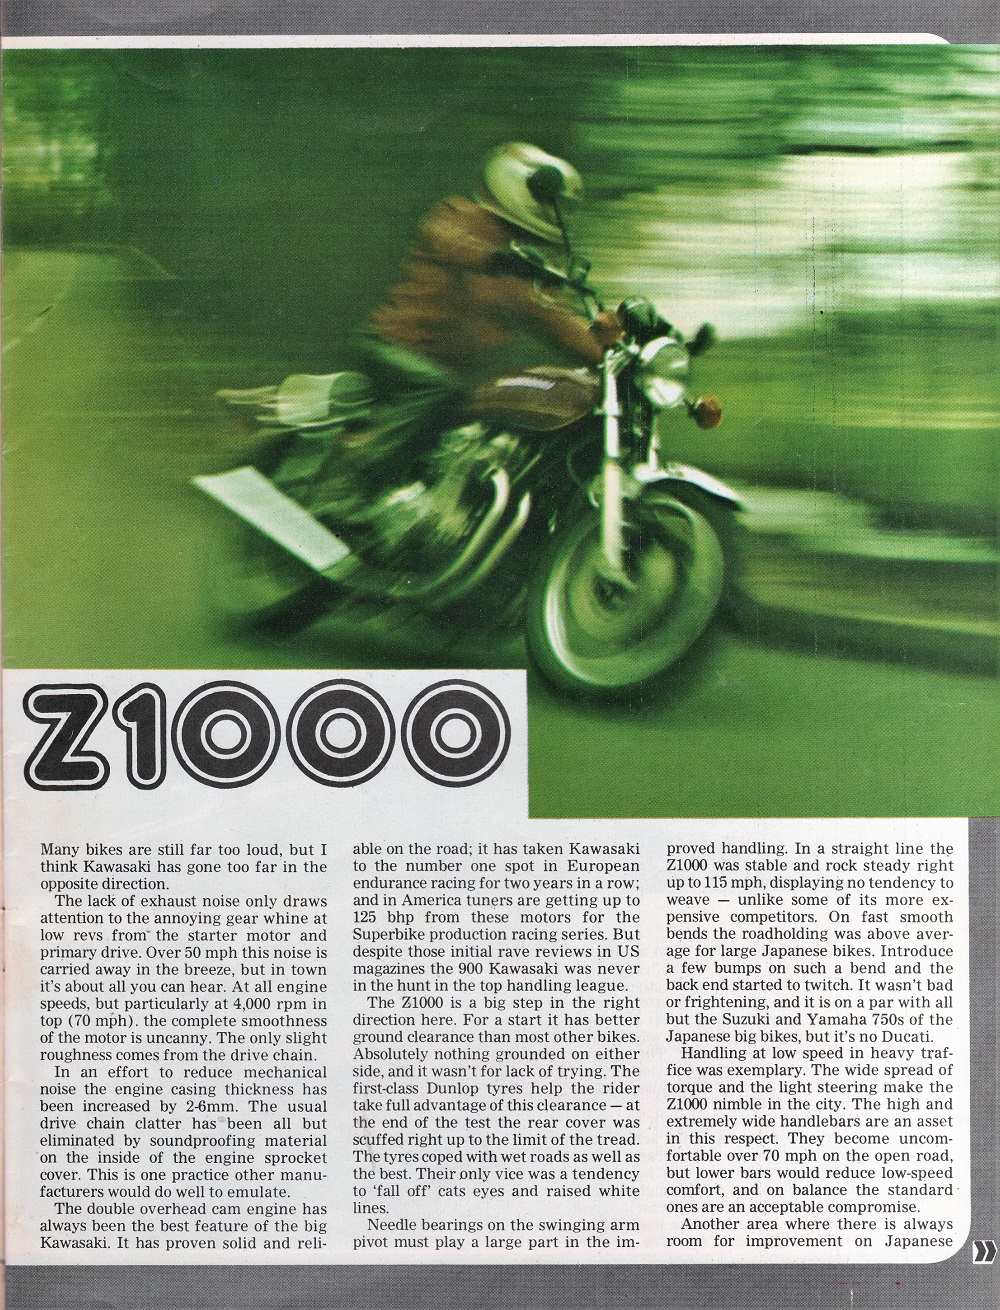 1977 Kawasaki Z1000 road test.2.jpg